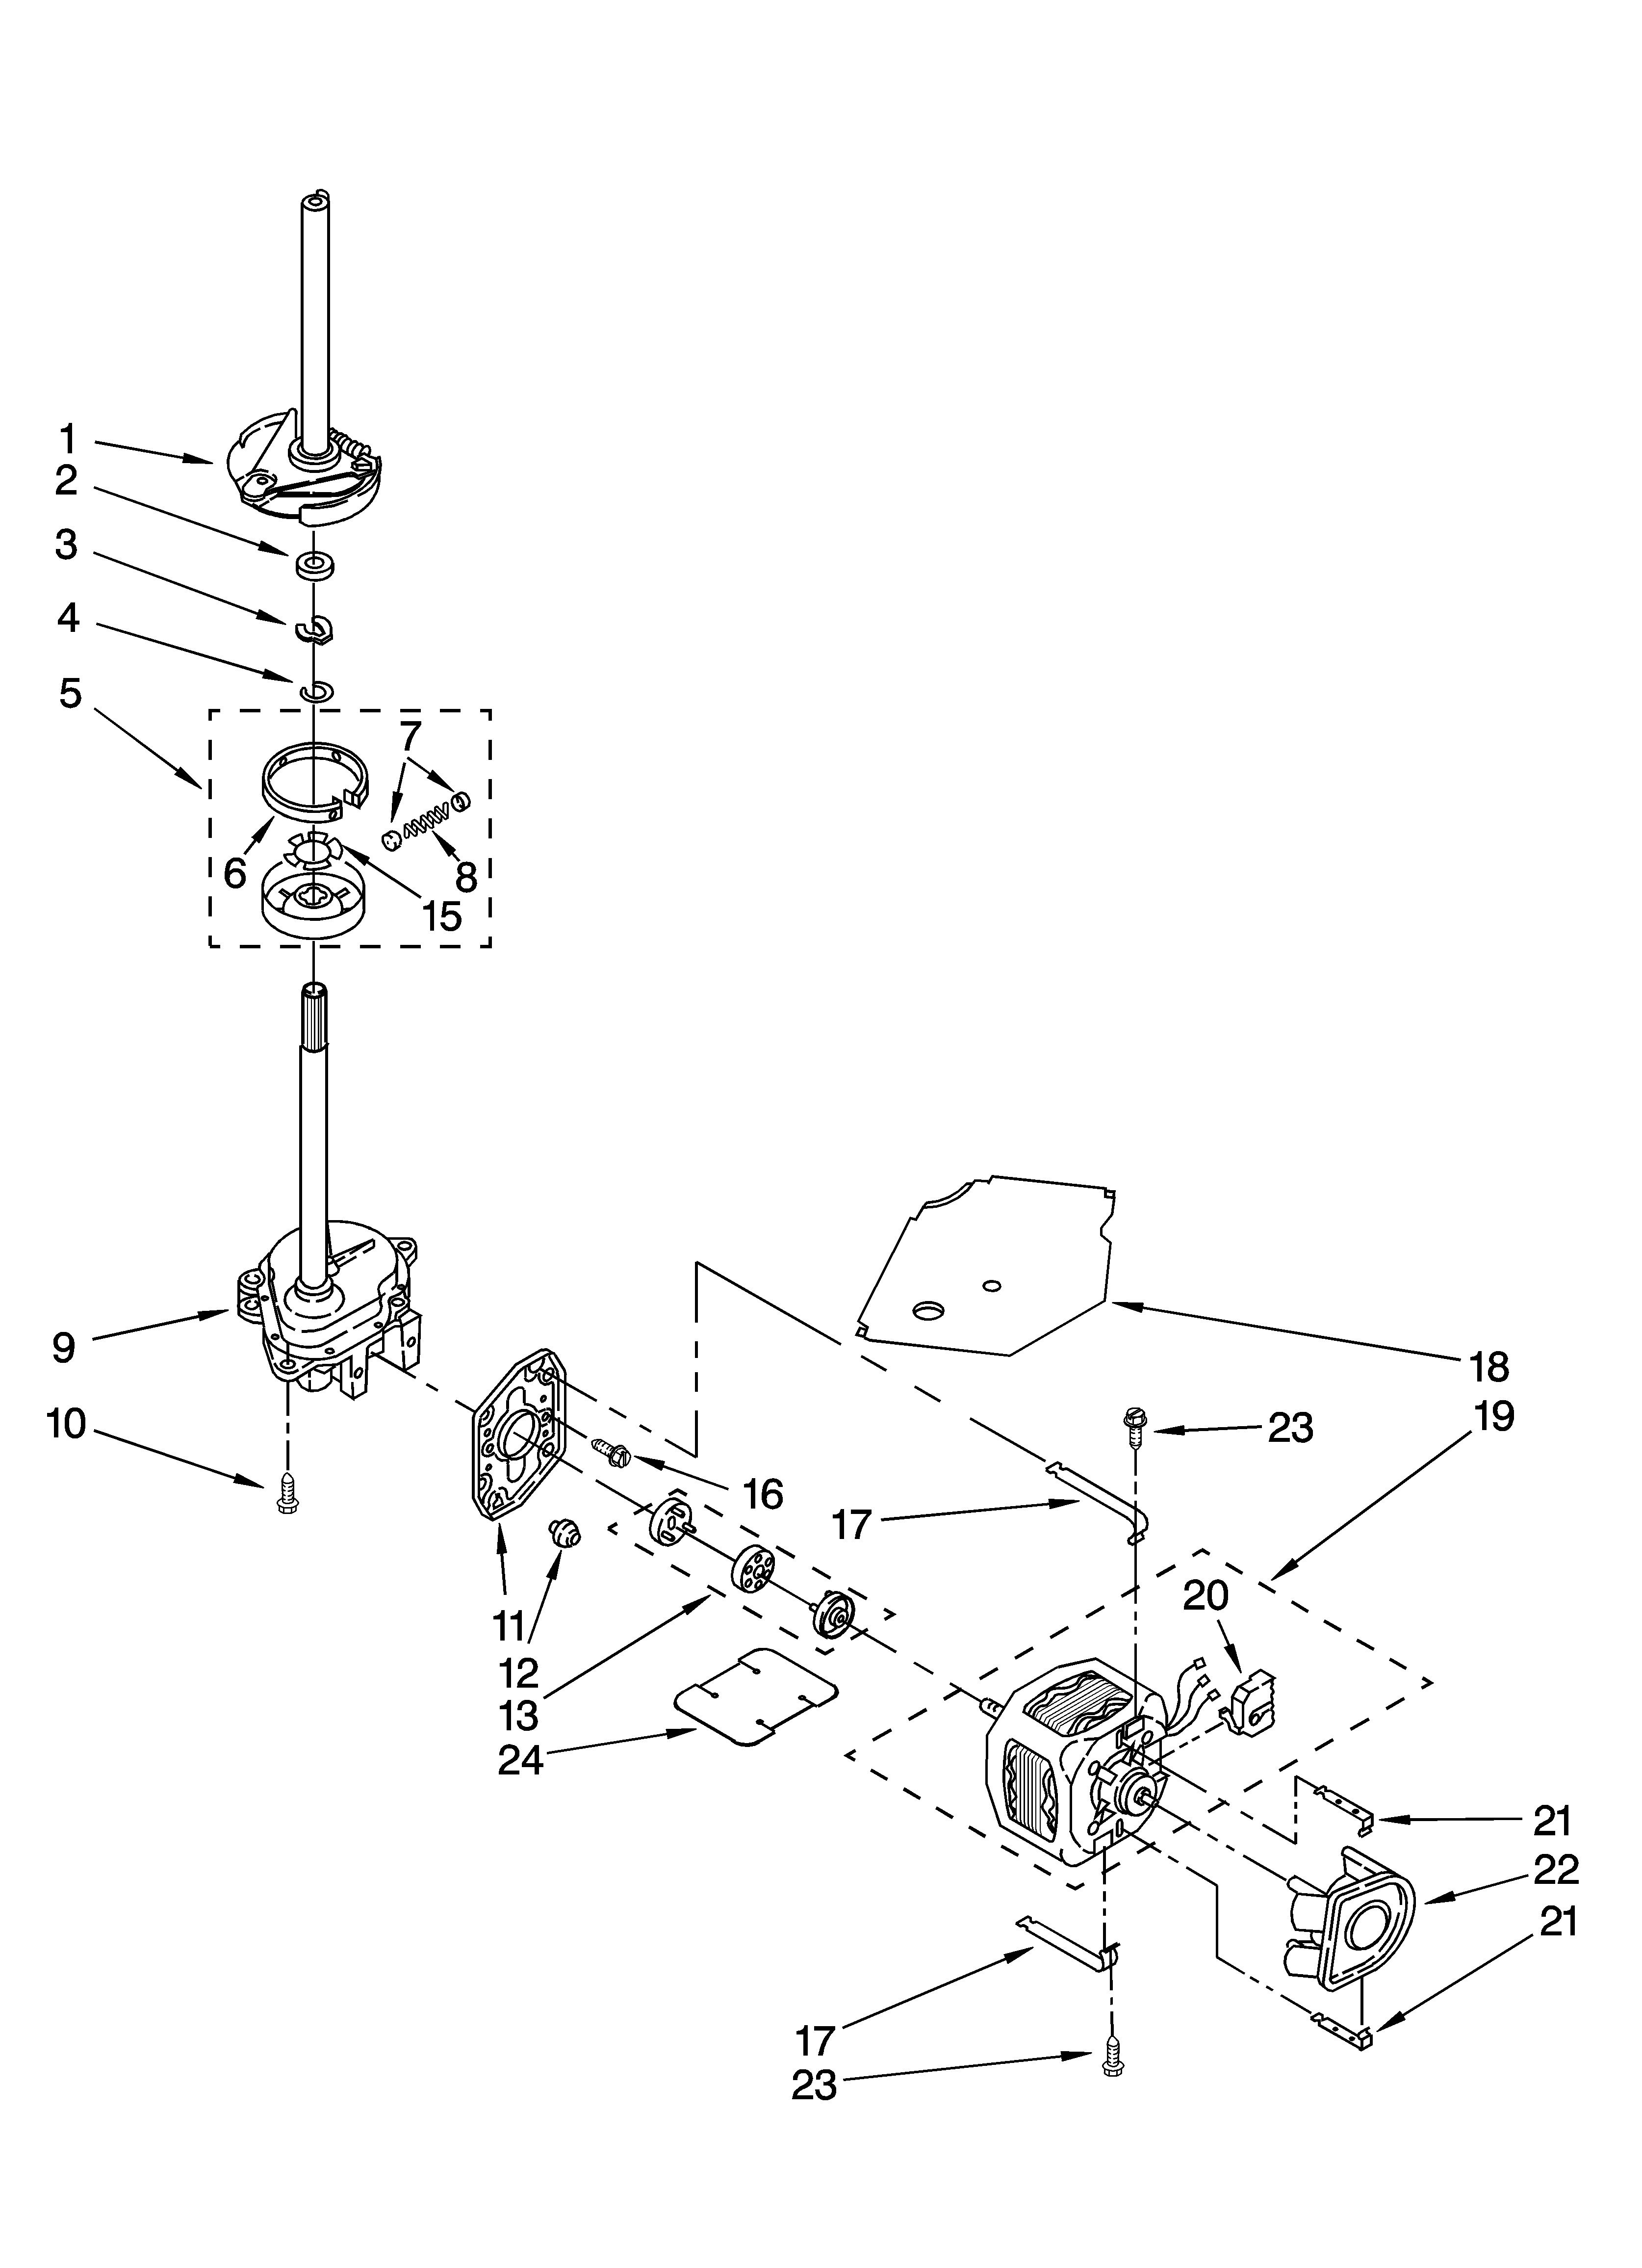 BRAKE, CLUTCH, GEARCASE, MOTOR AND PUMP PARTS Diagram